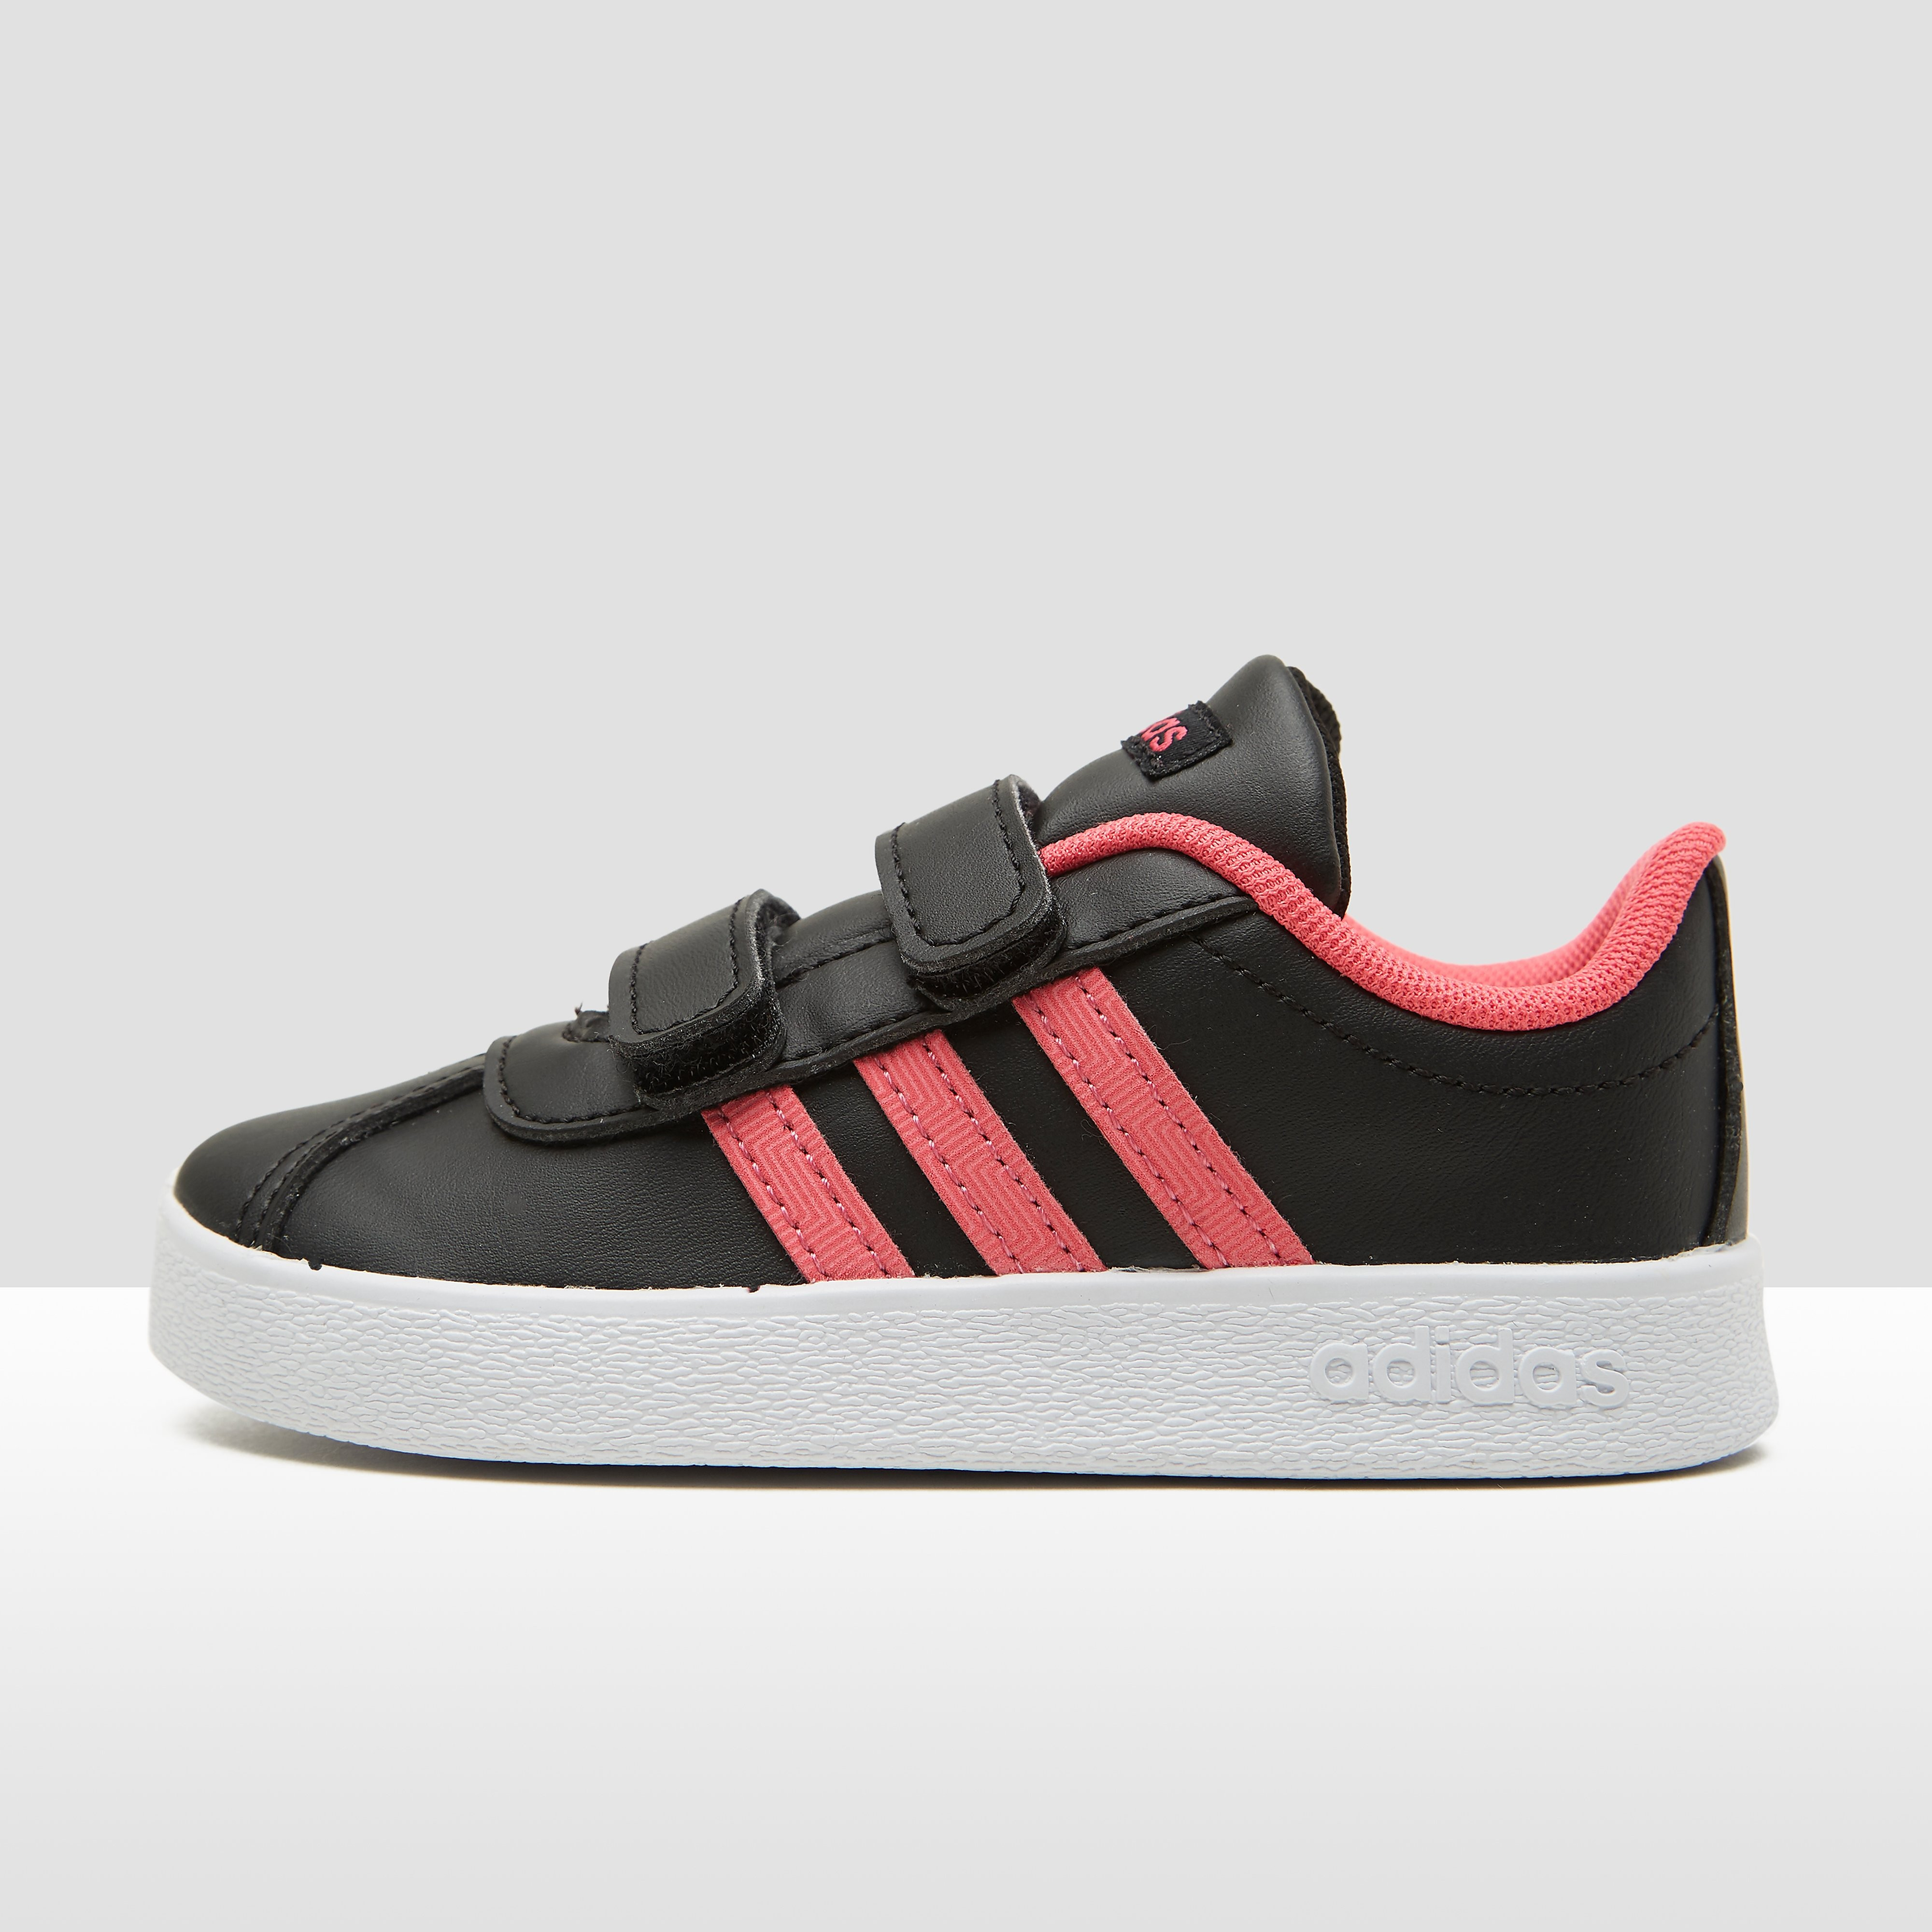 ADIDAS VL COURT 2.0 SNEAKERS WIT/ROZE BABY